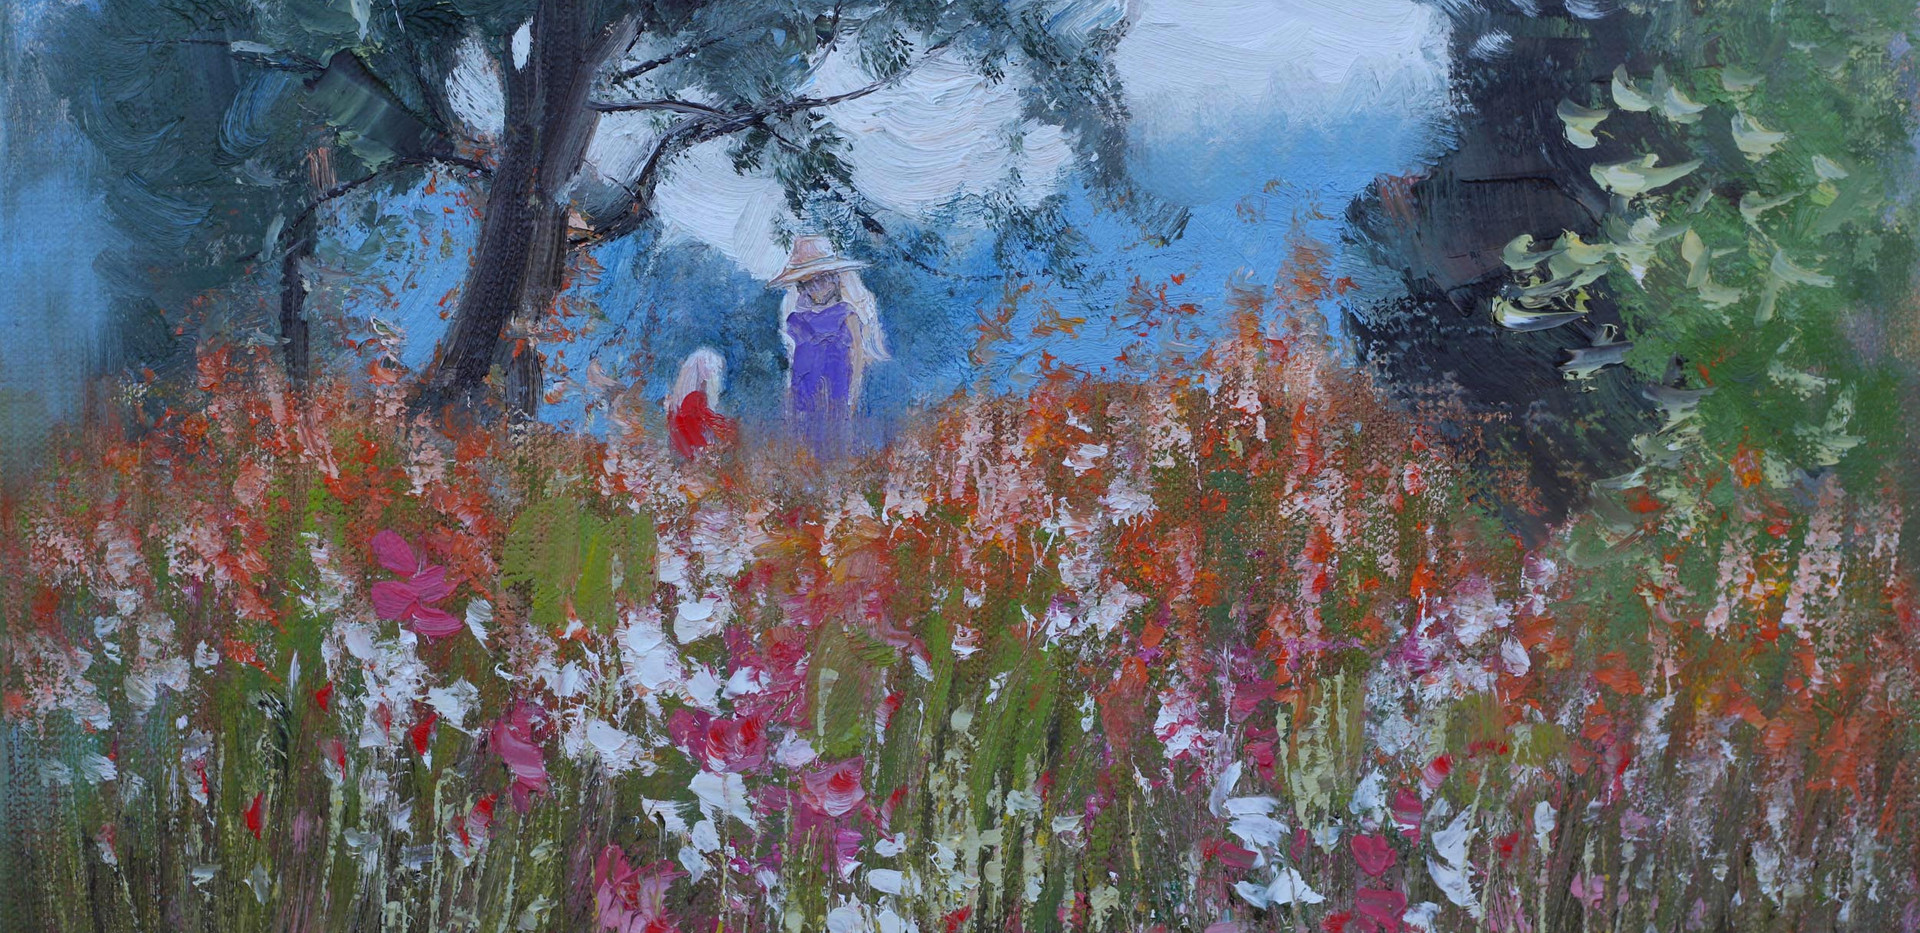 Among the Flowers 41cm x 30cm